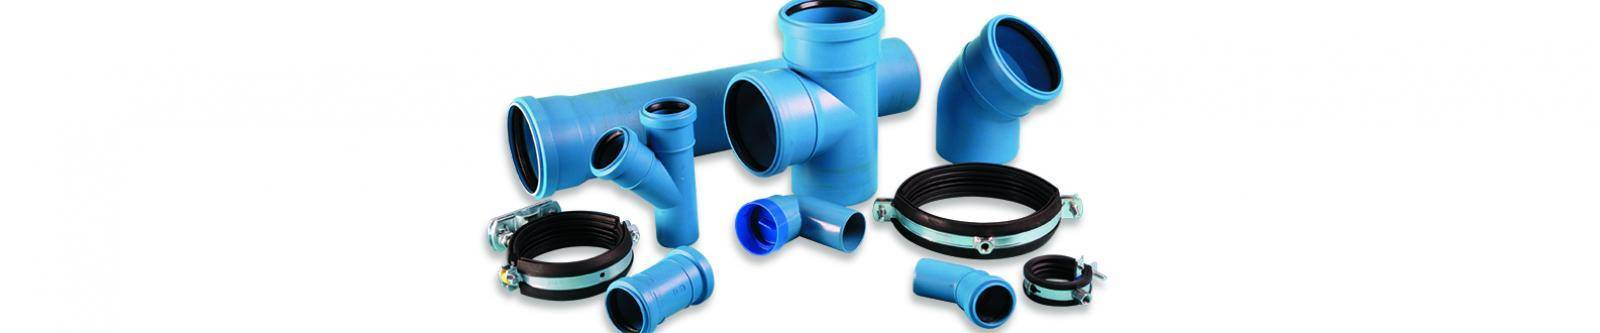 Noise sensitive environments polypipe international for Water pipe noise reduction